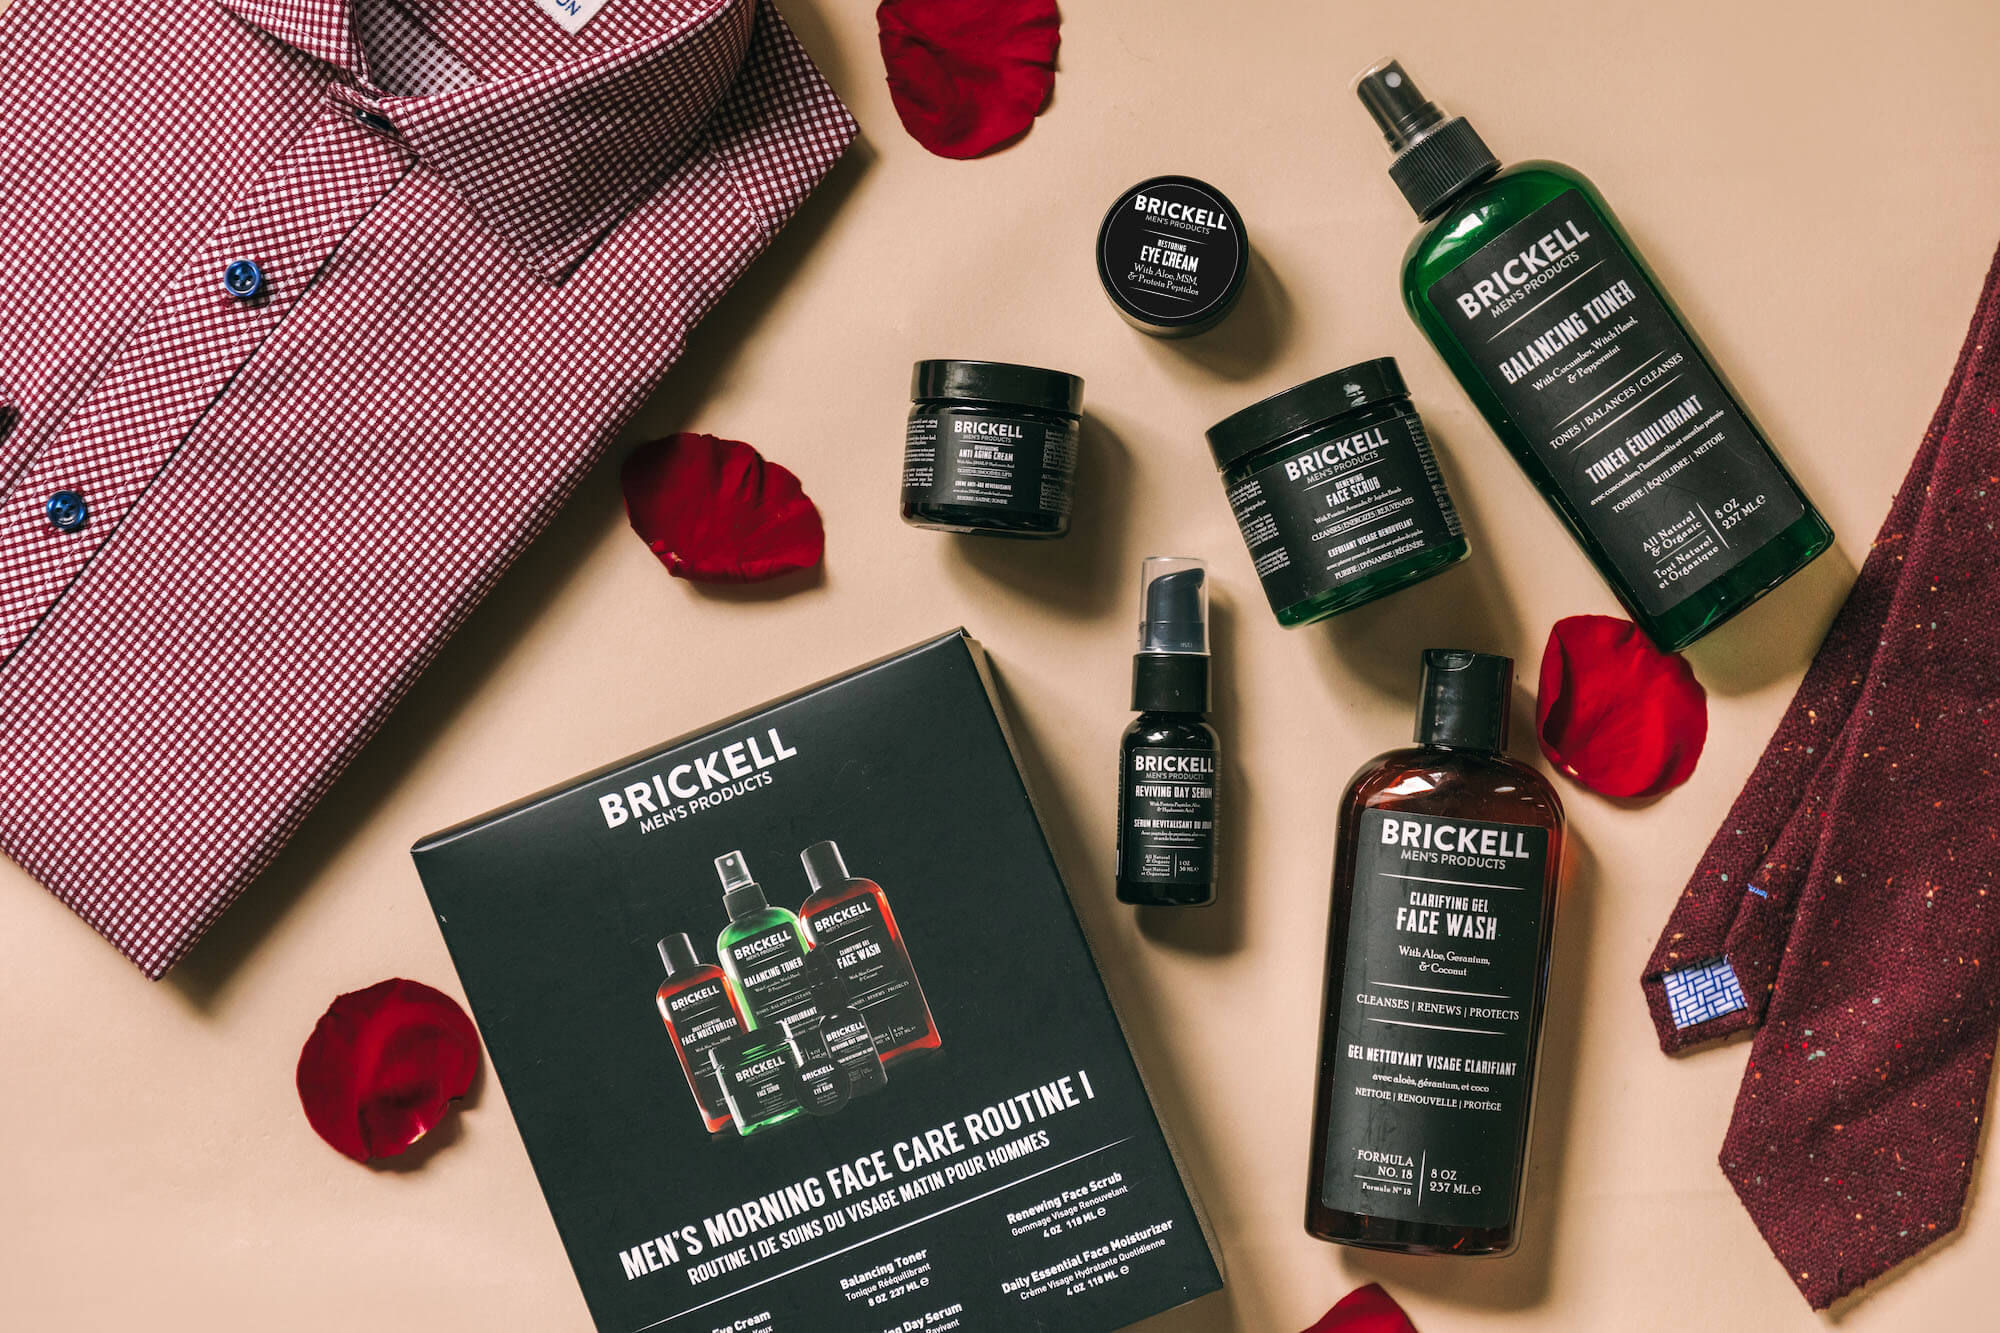 Valentine's Day face care routine for men